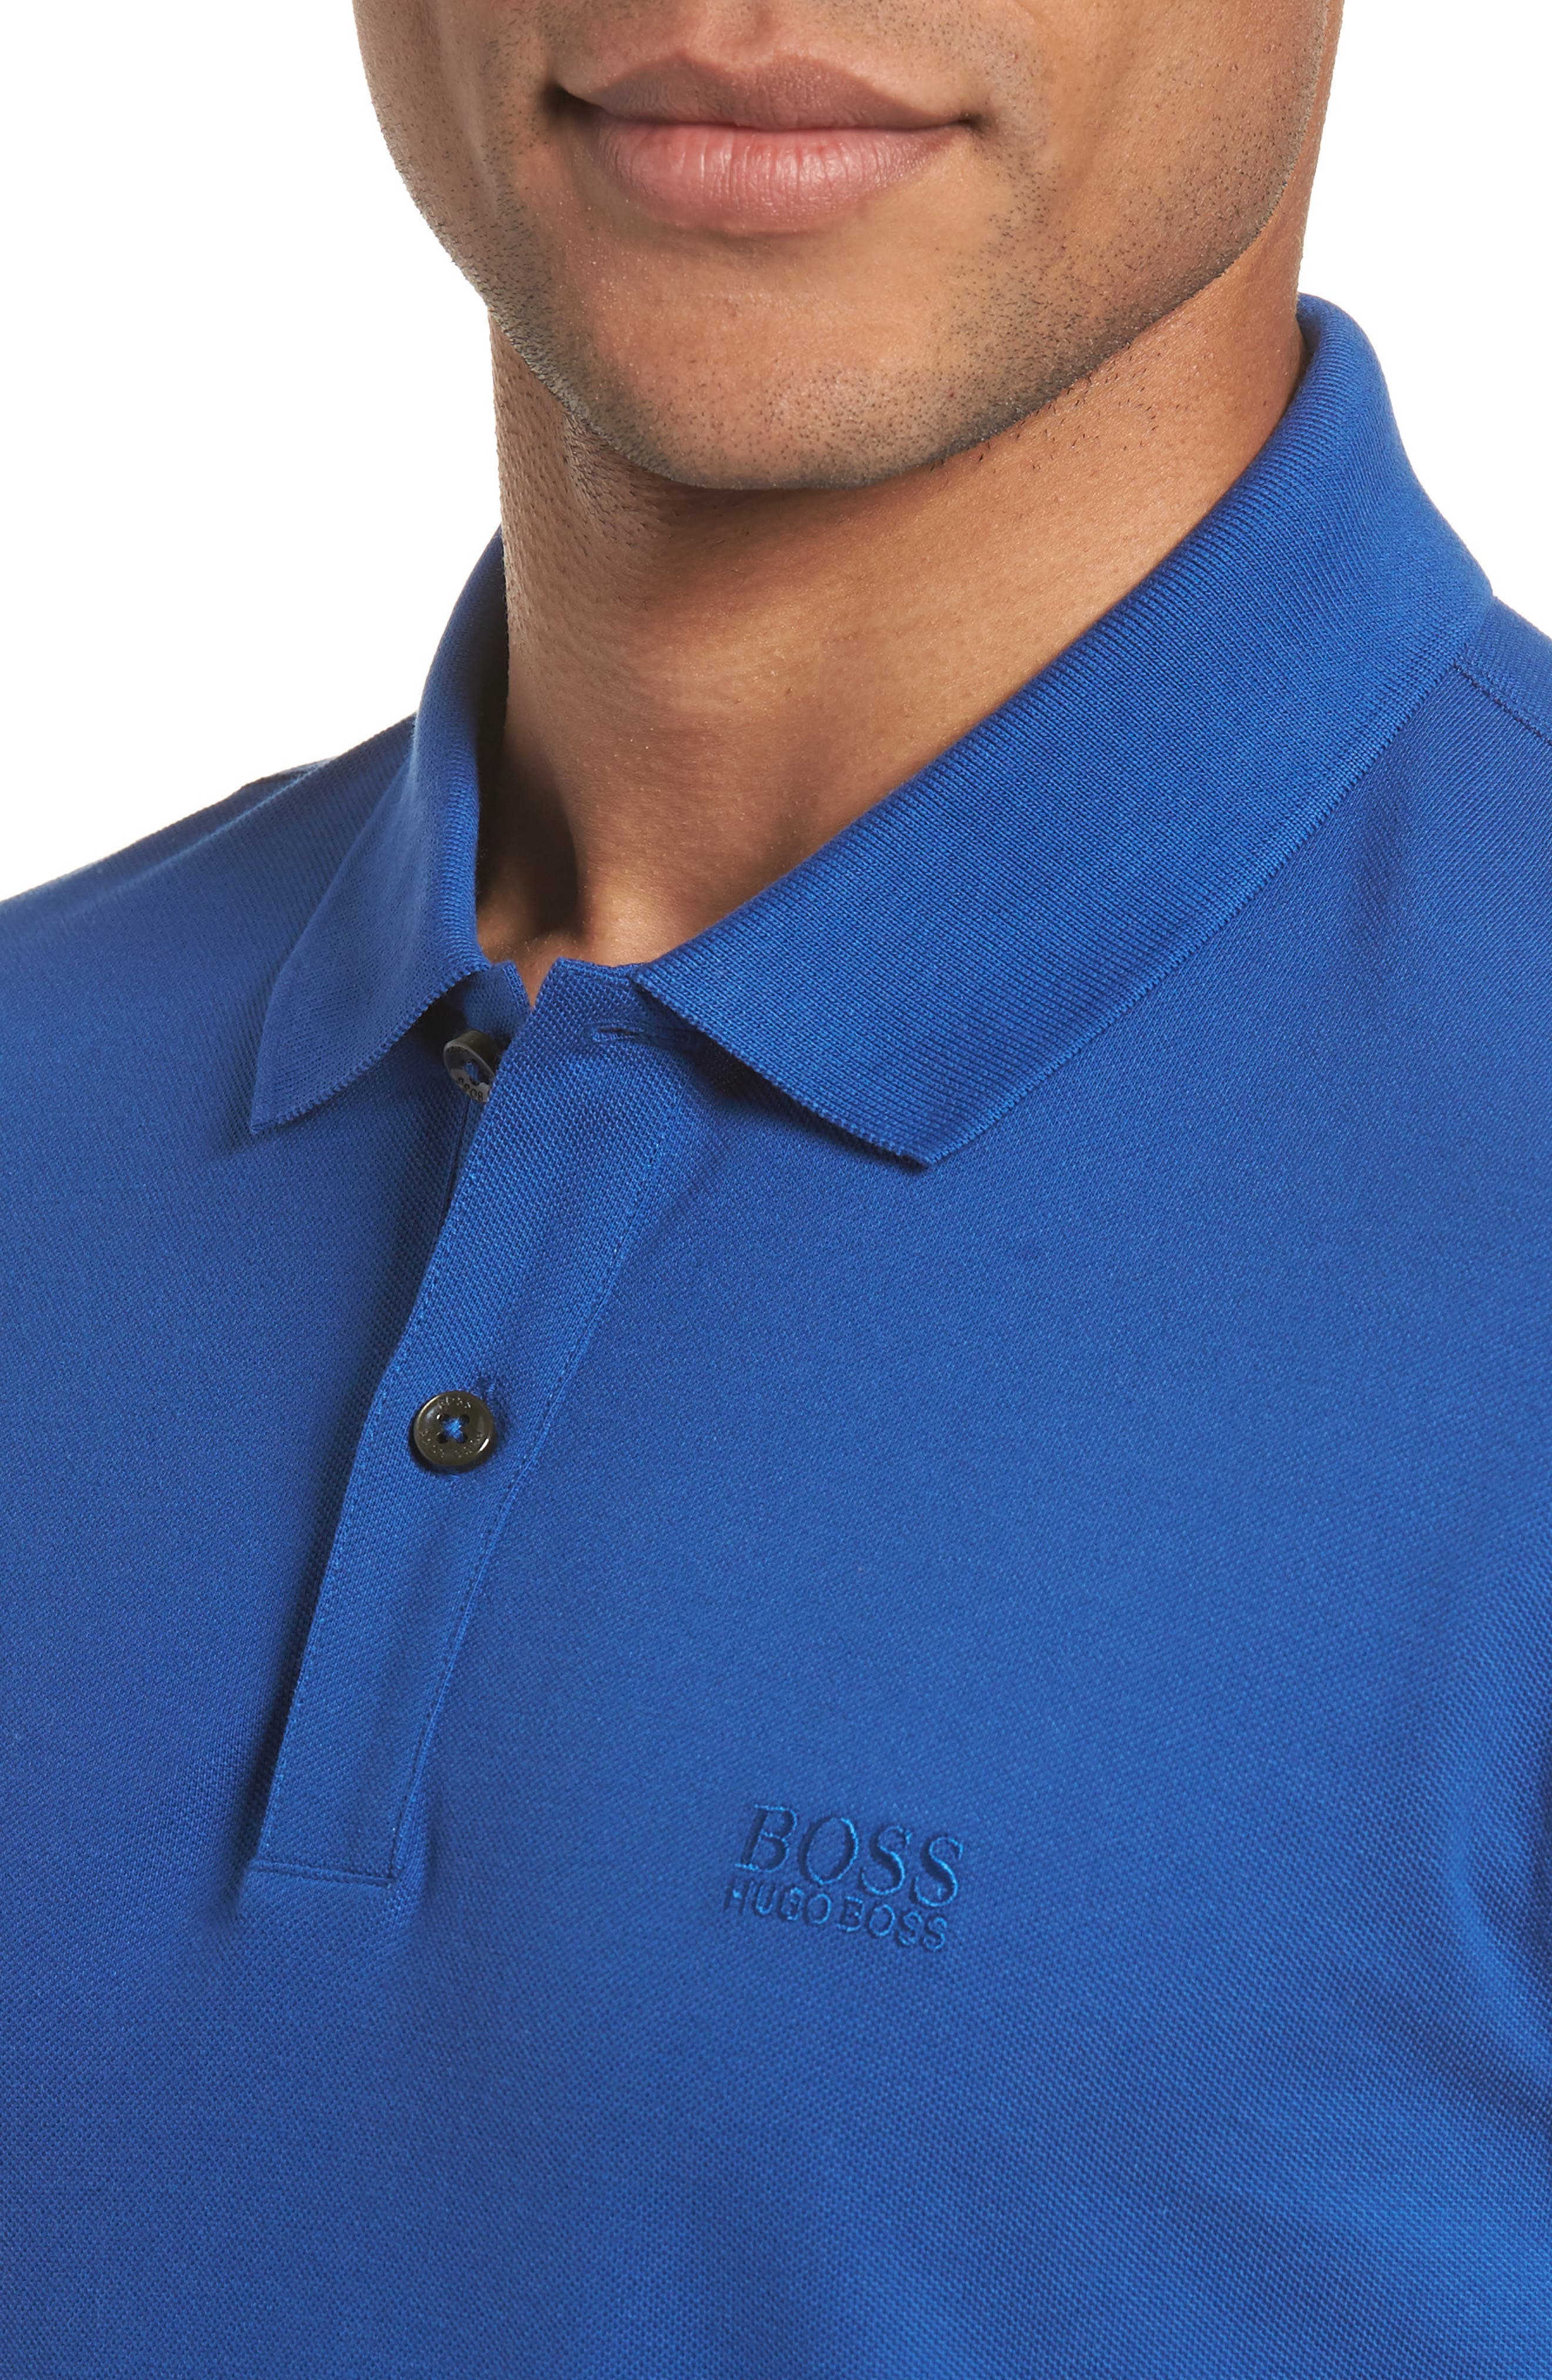 'Pallas' Regular Fit Logo Embroidered Polo Shirt,                             Alternate thumbnail 53, color,